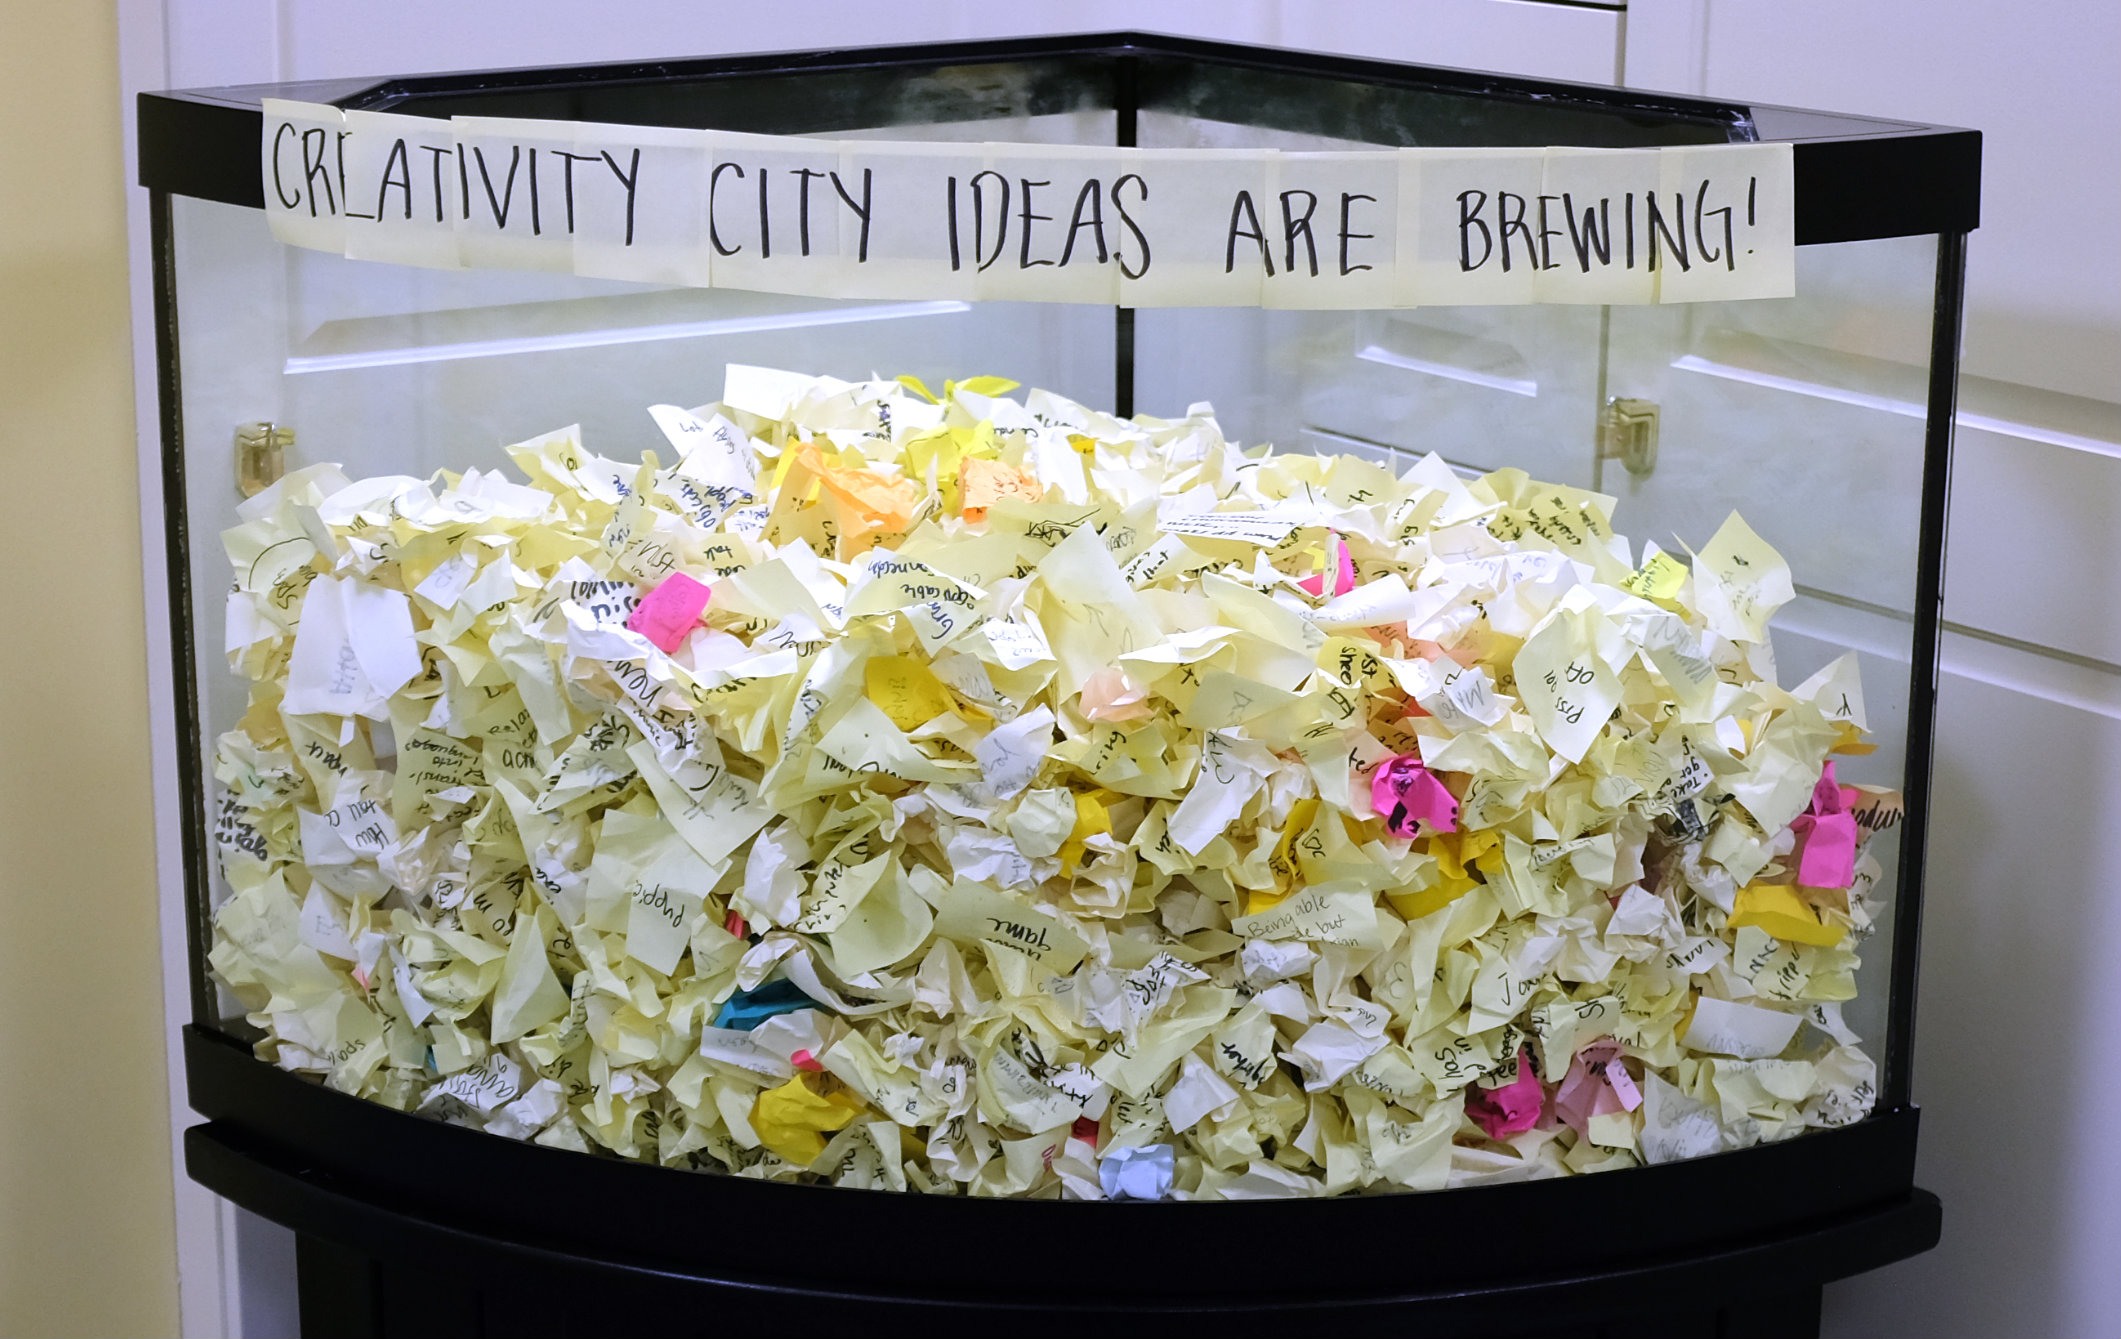 Creativity City ideas on small papers, crumpled in fishtank